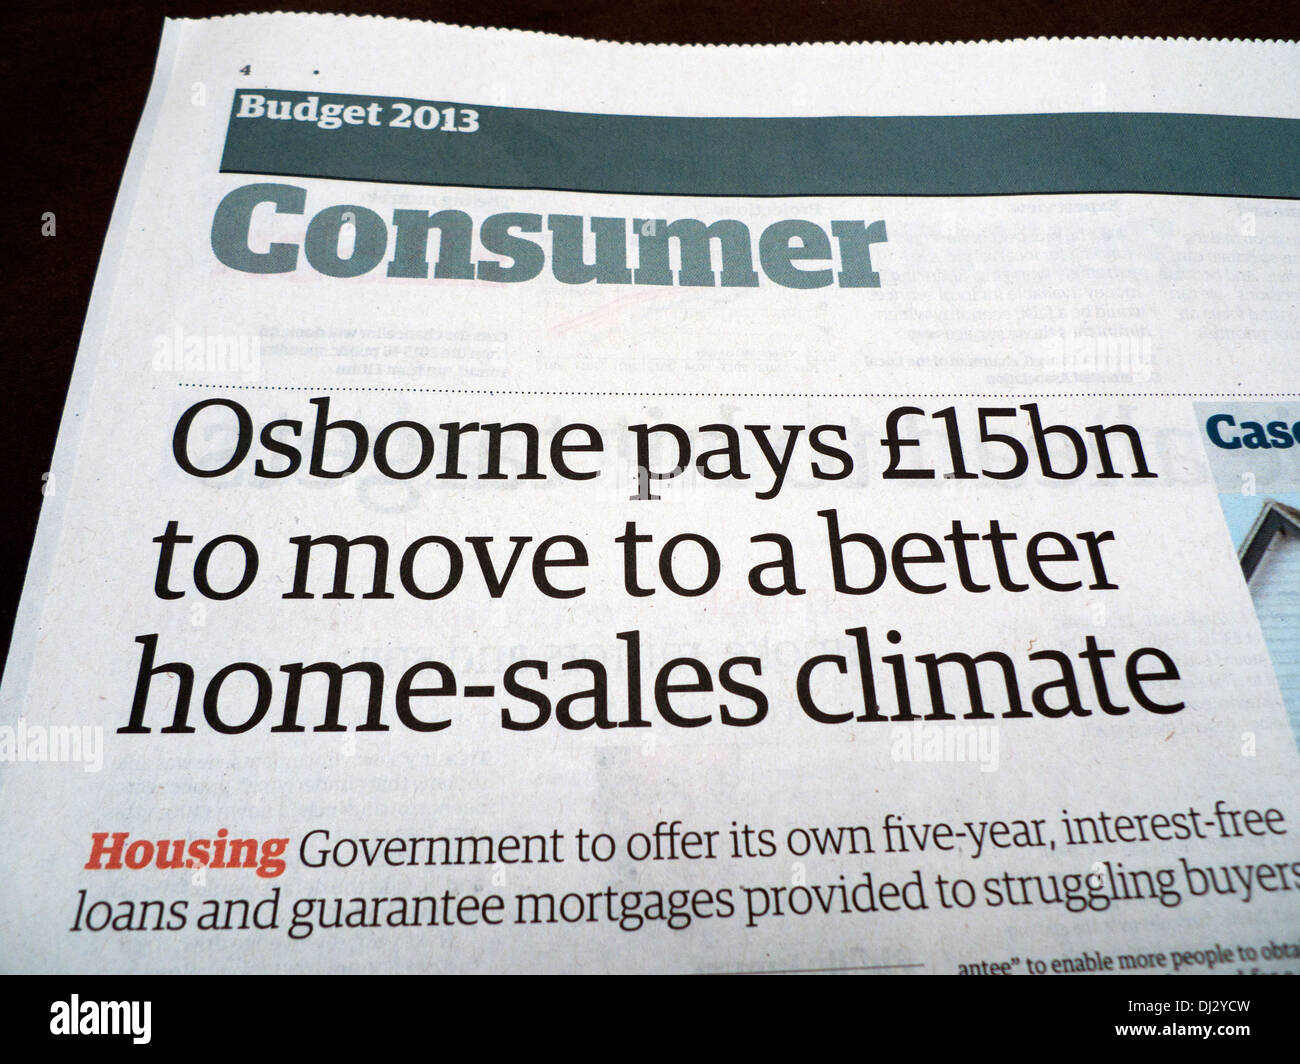 """""""Osborne pays £15bn to move to a better home-sales climate"""" article in Guardian 2013 Budget Special Consumer section Stock Photo"""